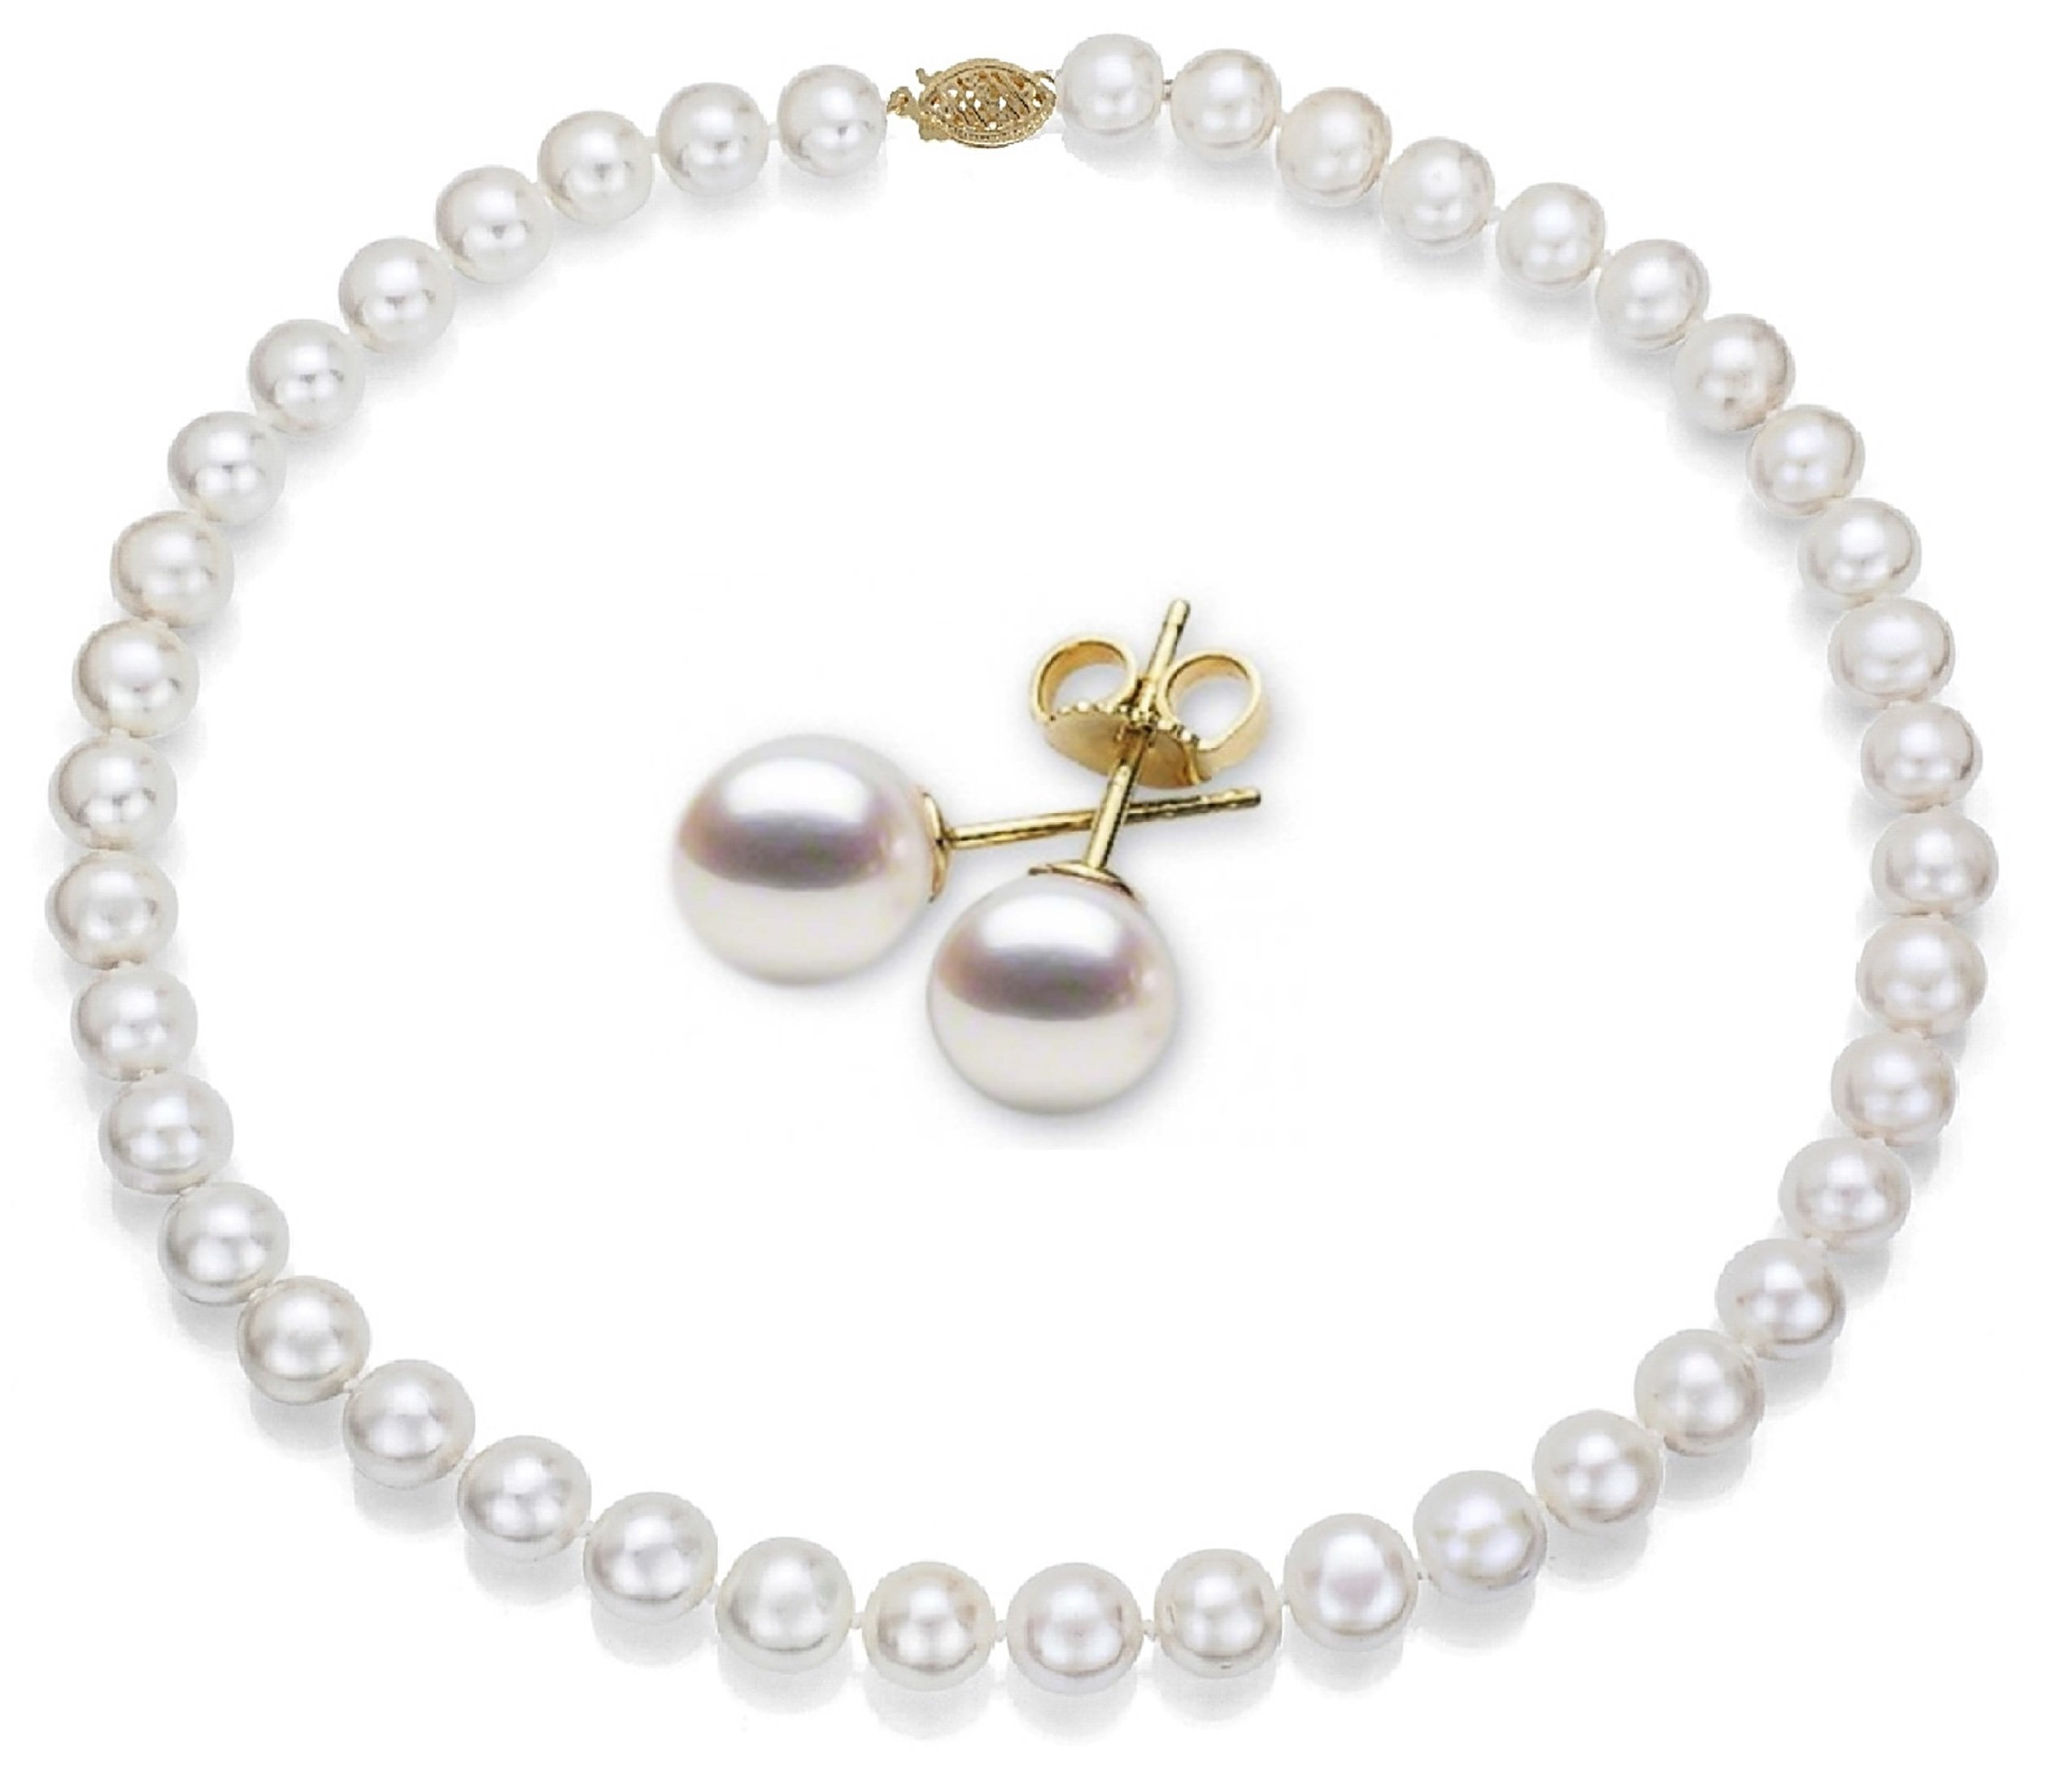 14k Gold, AAA Quality High Luster White Freshwater Cultured Pearl Set (9-10mm) Perfect Gift